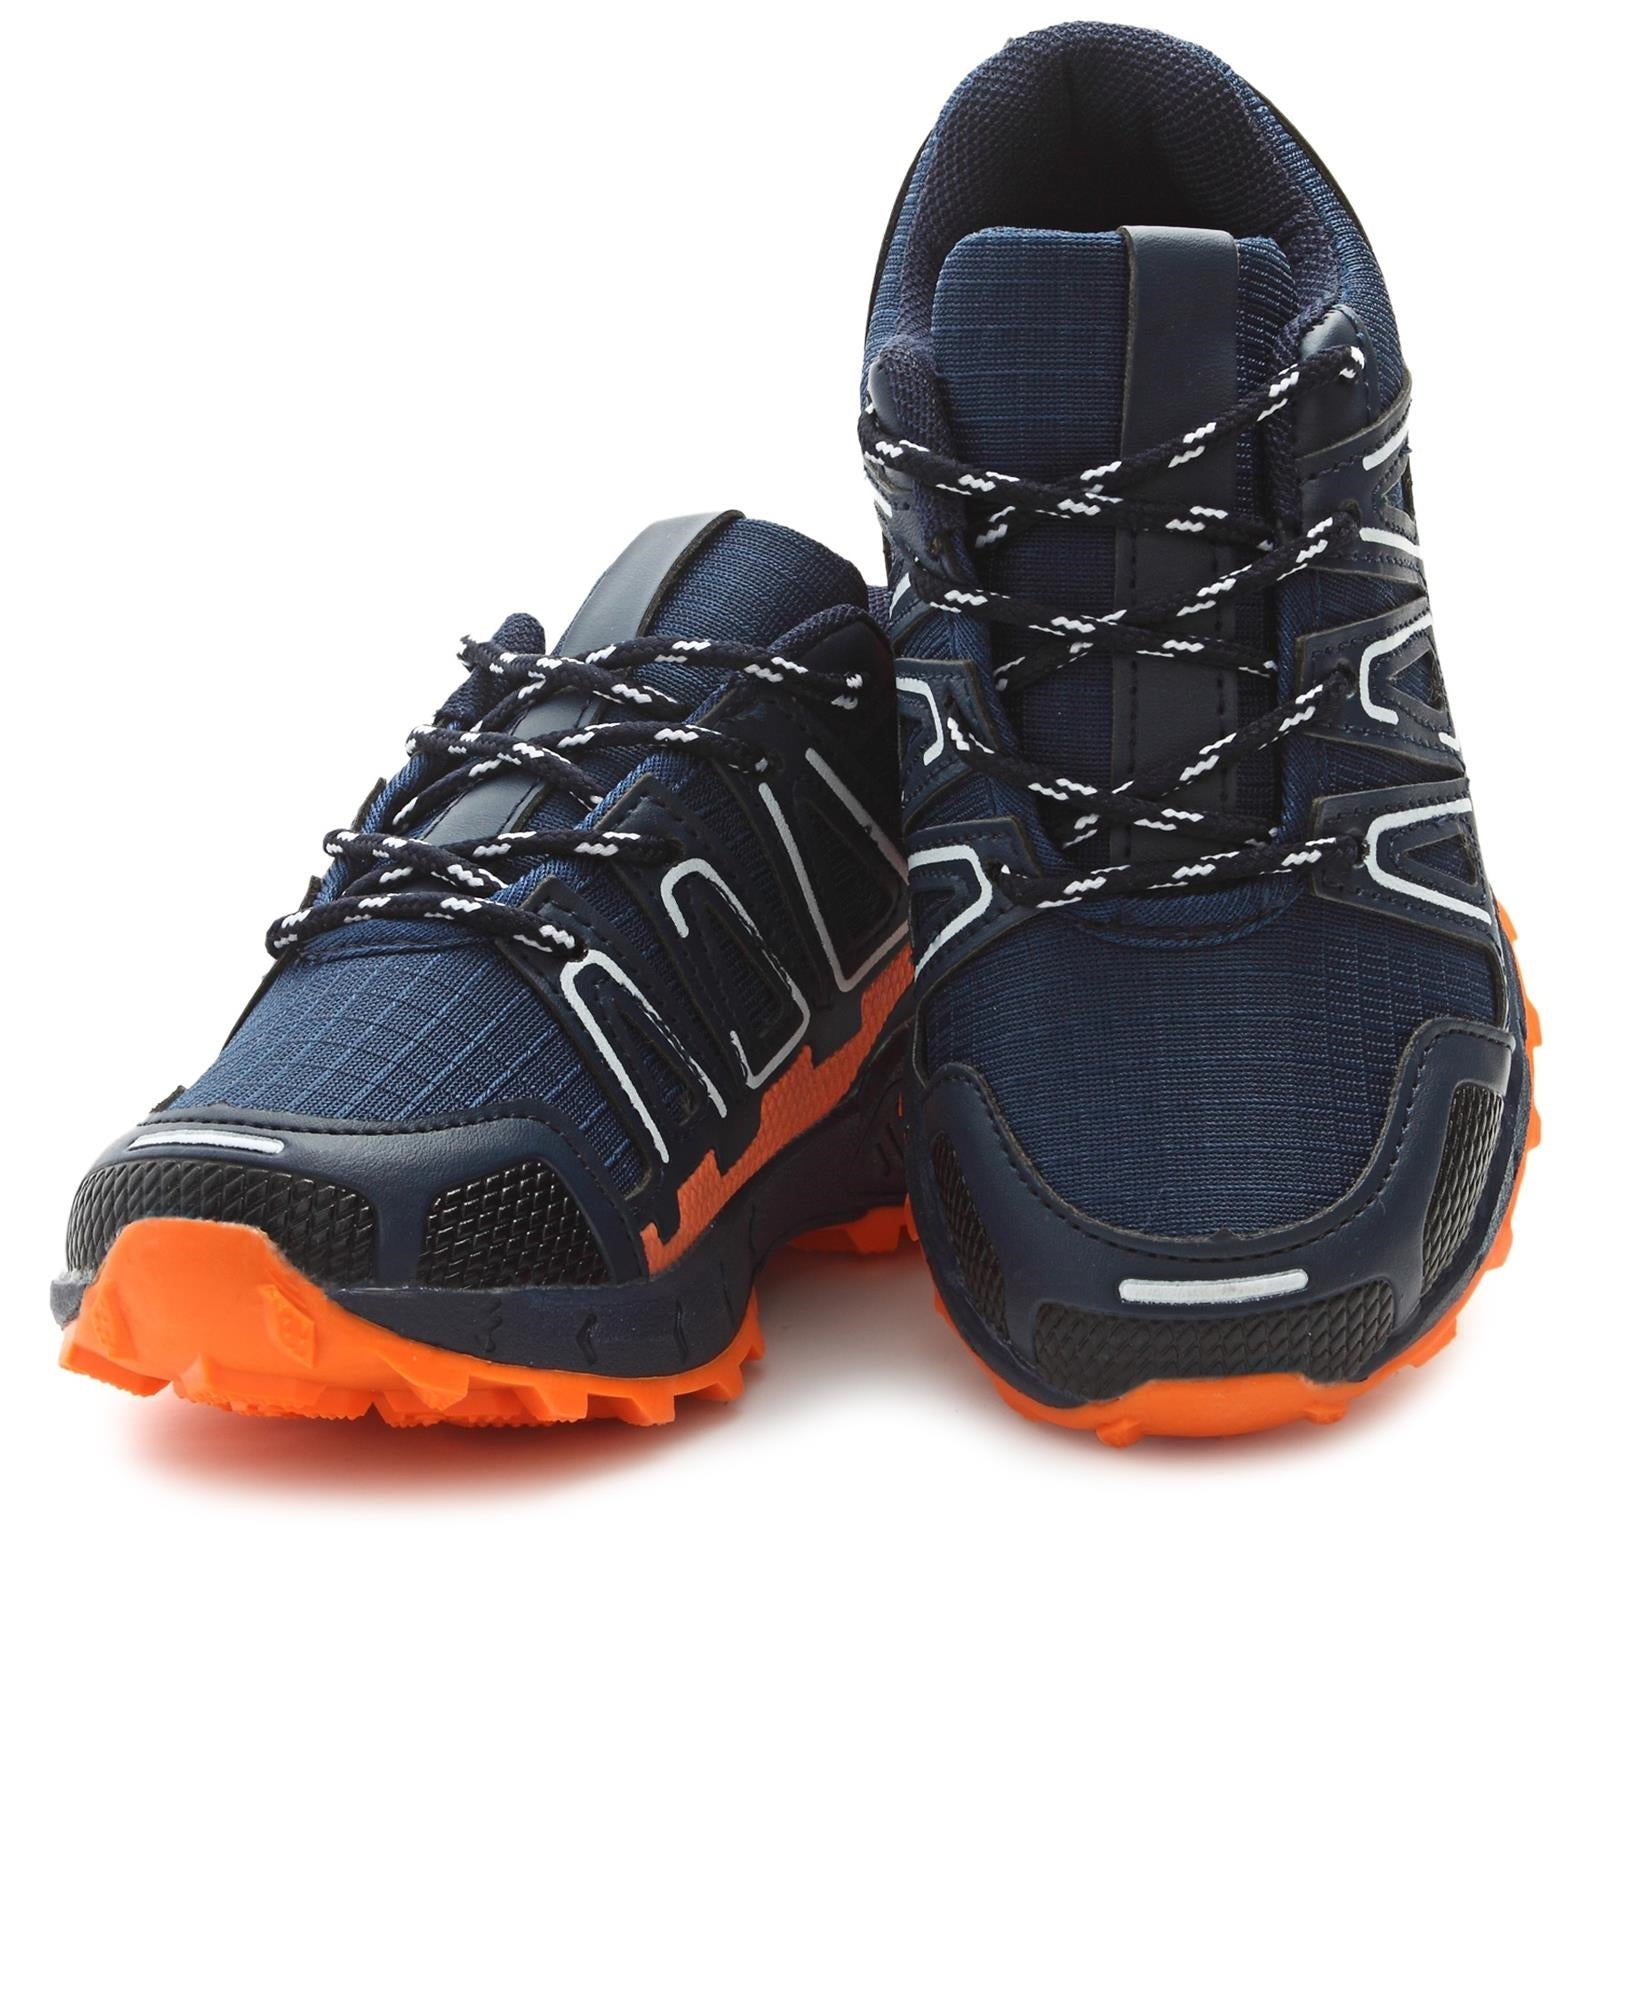 Kids Hiker Sneakers - Navy